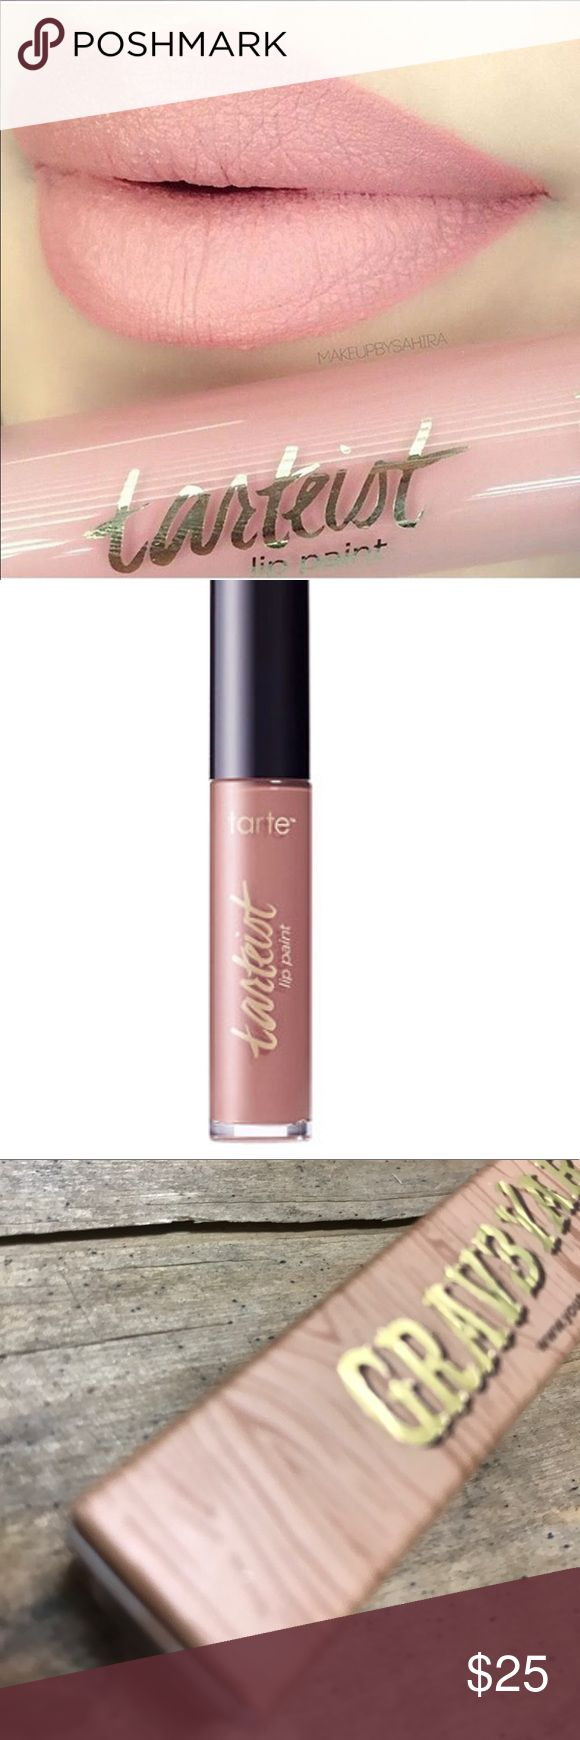 TARTE Texas toast lip paint Details- Tarteist Creamy Matte Lip Paint is a full coverage, vegan liquid lipstick that provides a bold, matte look with a weightless, velvet texture and vibrant, non-drying mineral pigments.  What the product does: Provides a bold, matte look with a weightless, whipped texture and super-concentrated, non-drying mineral pigments~New inbox 6 ML tarte Makeup Lipstick